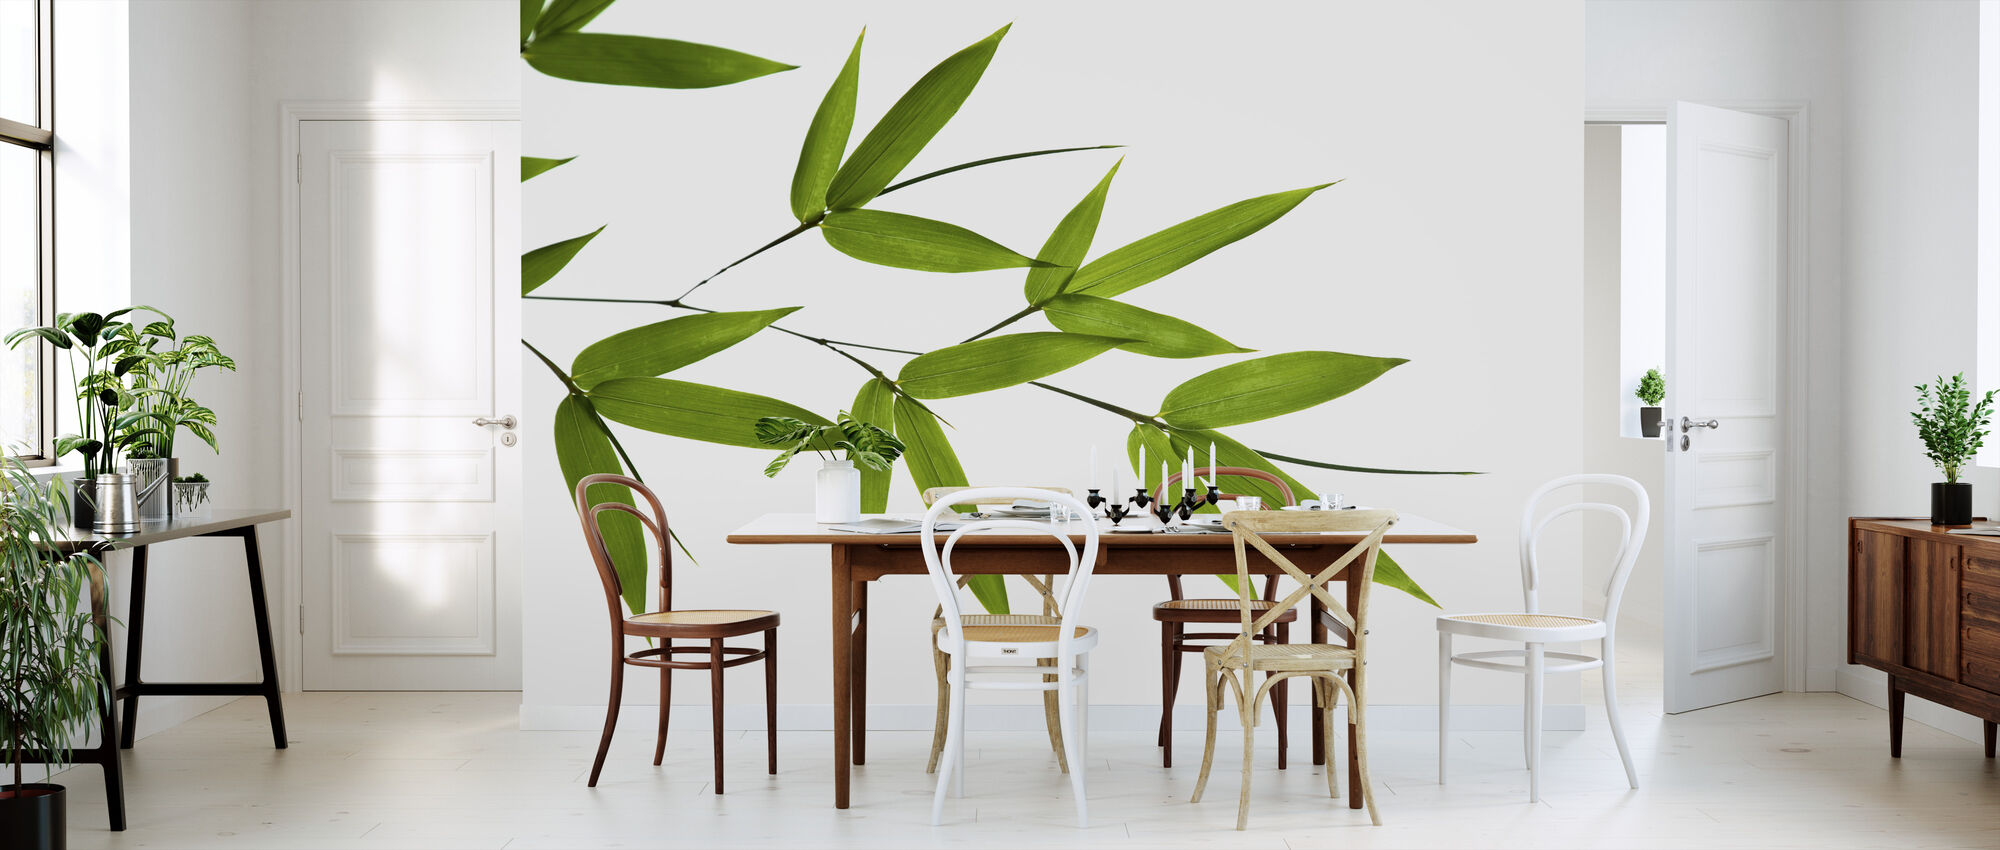 Bamboo Leaves - Wallpaper - Kitchen